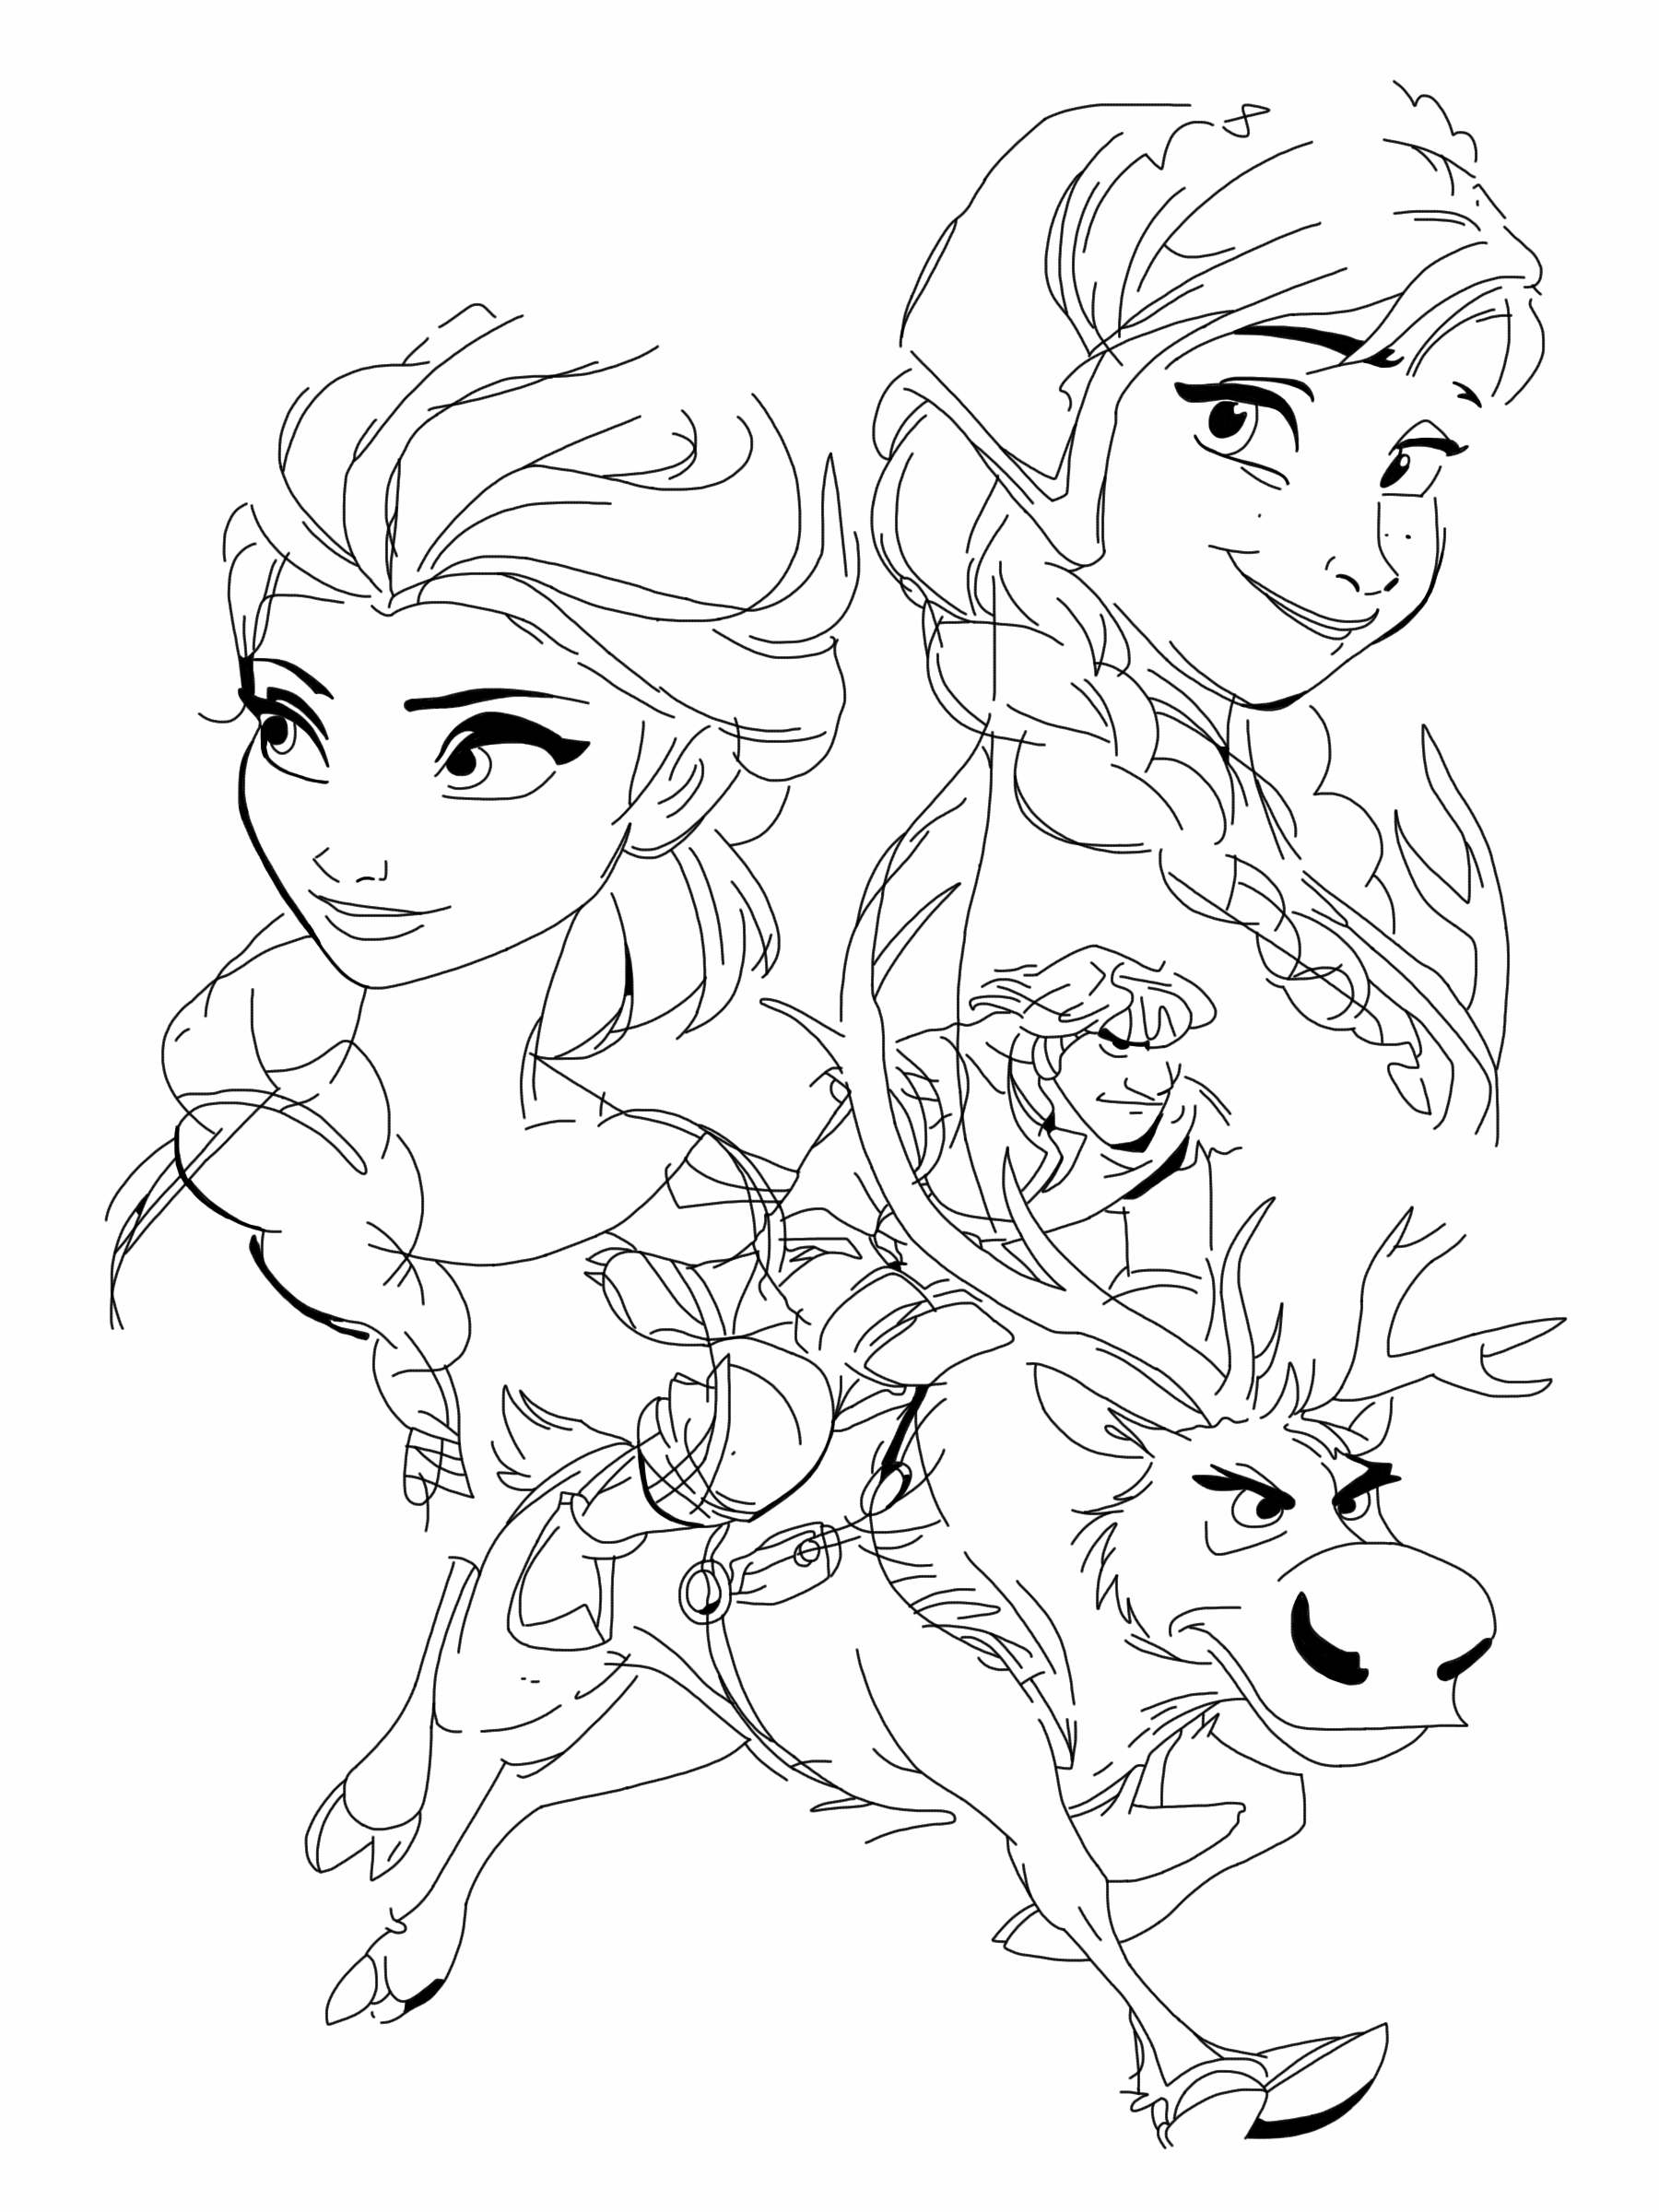 Baby Reindeer From Frozen Coloring Pages Anna Elsa Kristoff And Sven By Spartandragon12 On DeviantArt